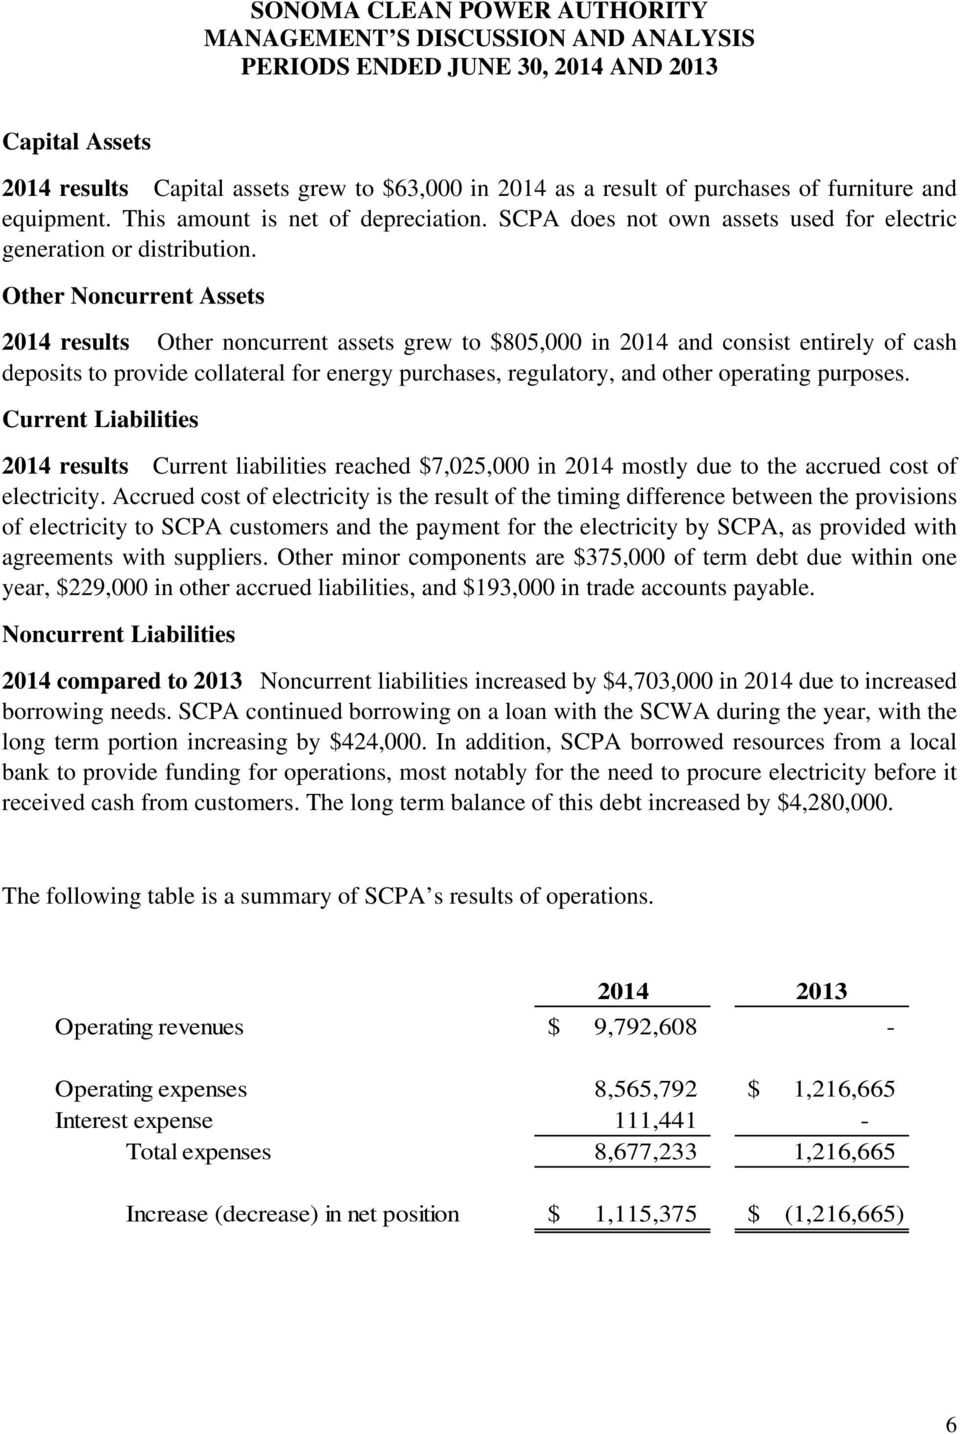 Other Noncurrent Assets 2014 results Other noncurrent assets grew to $805,000 in 2014 and consist entirely of cash deposits to provide collateral for energy purchases, regulatory, and other operating